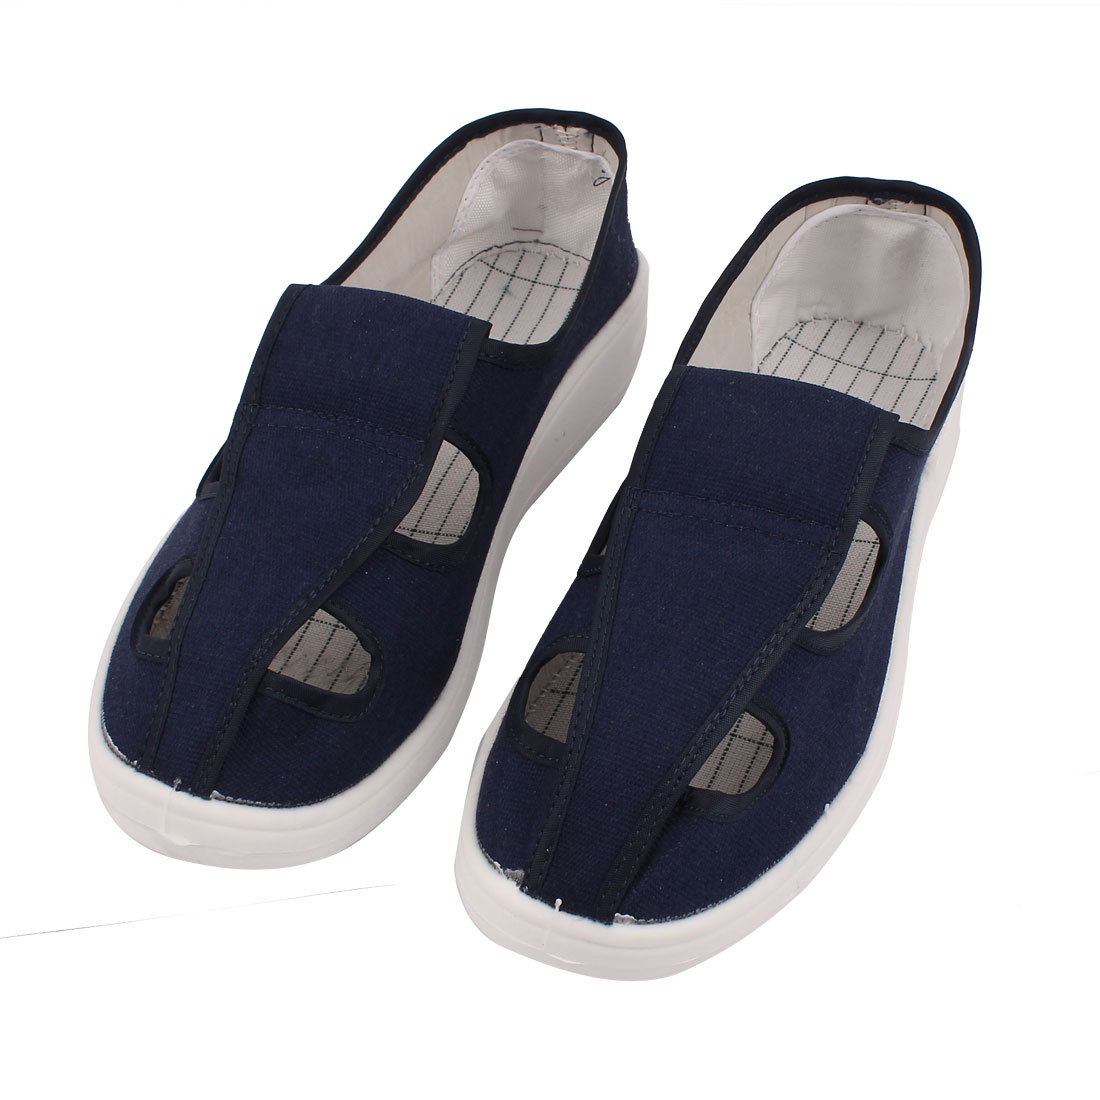 US6 UK5.5 EU39 PU Soft Bottom Nonslip Flat Sole Anti-static 4-Hole Canvas Shoes